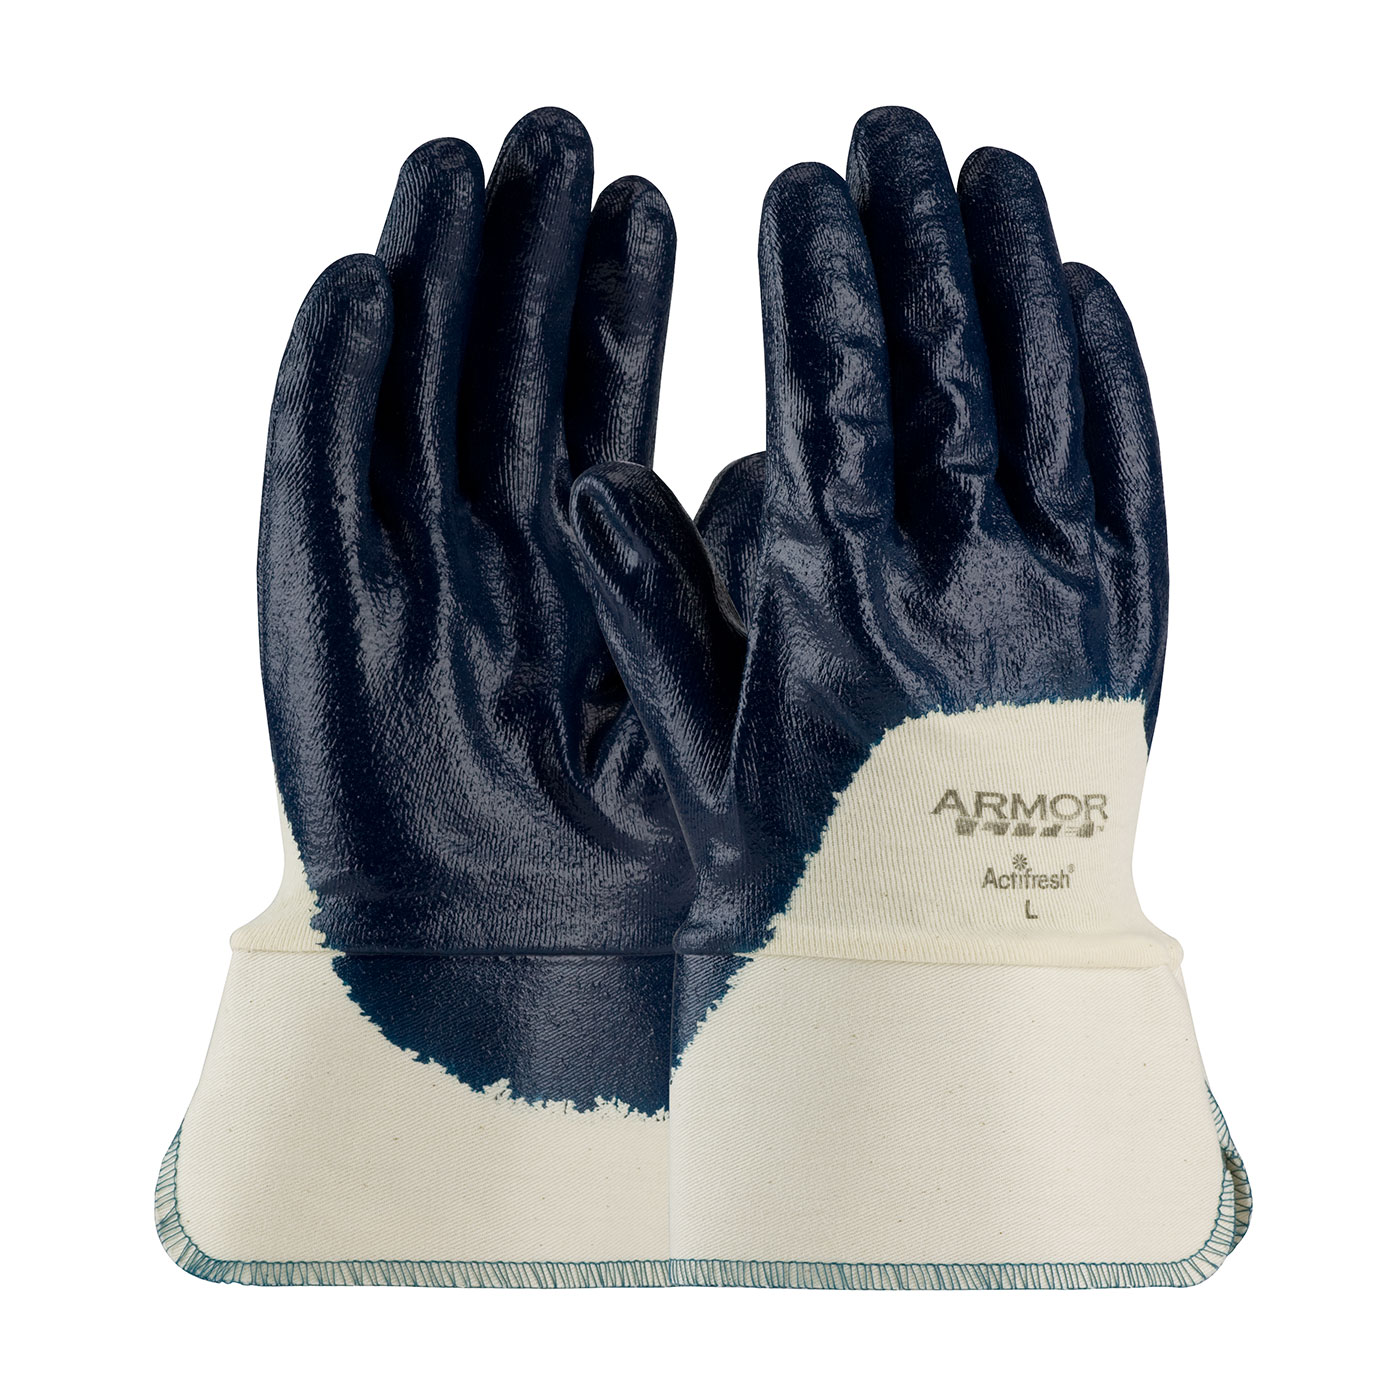 56-3175 PIP® ArmorLite® Nitrile Dipped Glove with Interlock Liner and Textured Finish on Fingers, Palm and Knuckles has a Safety Cuff